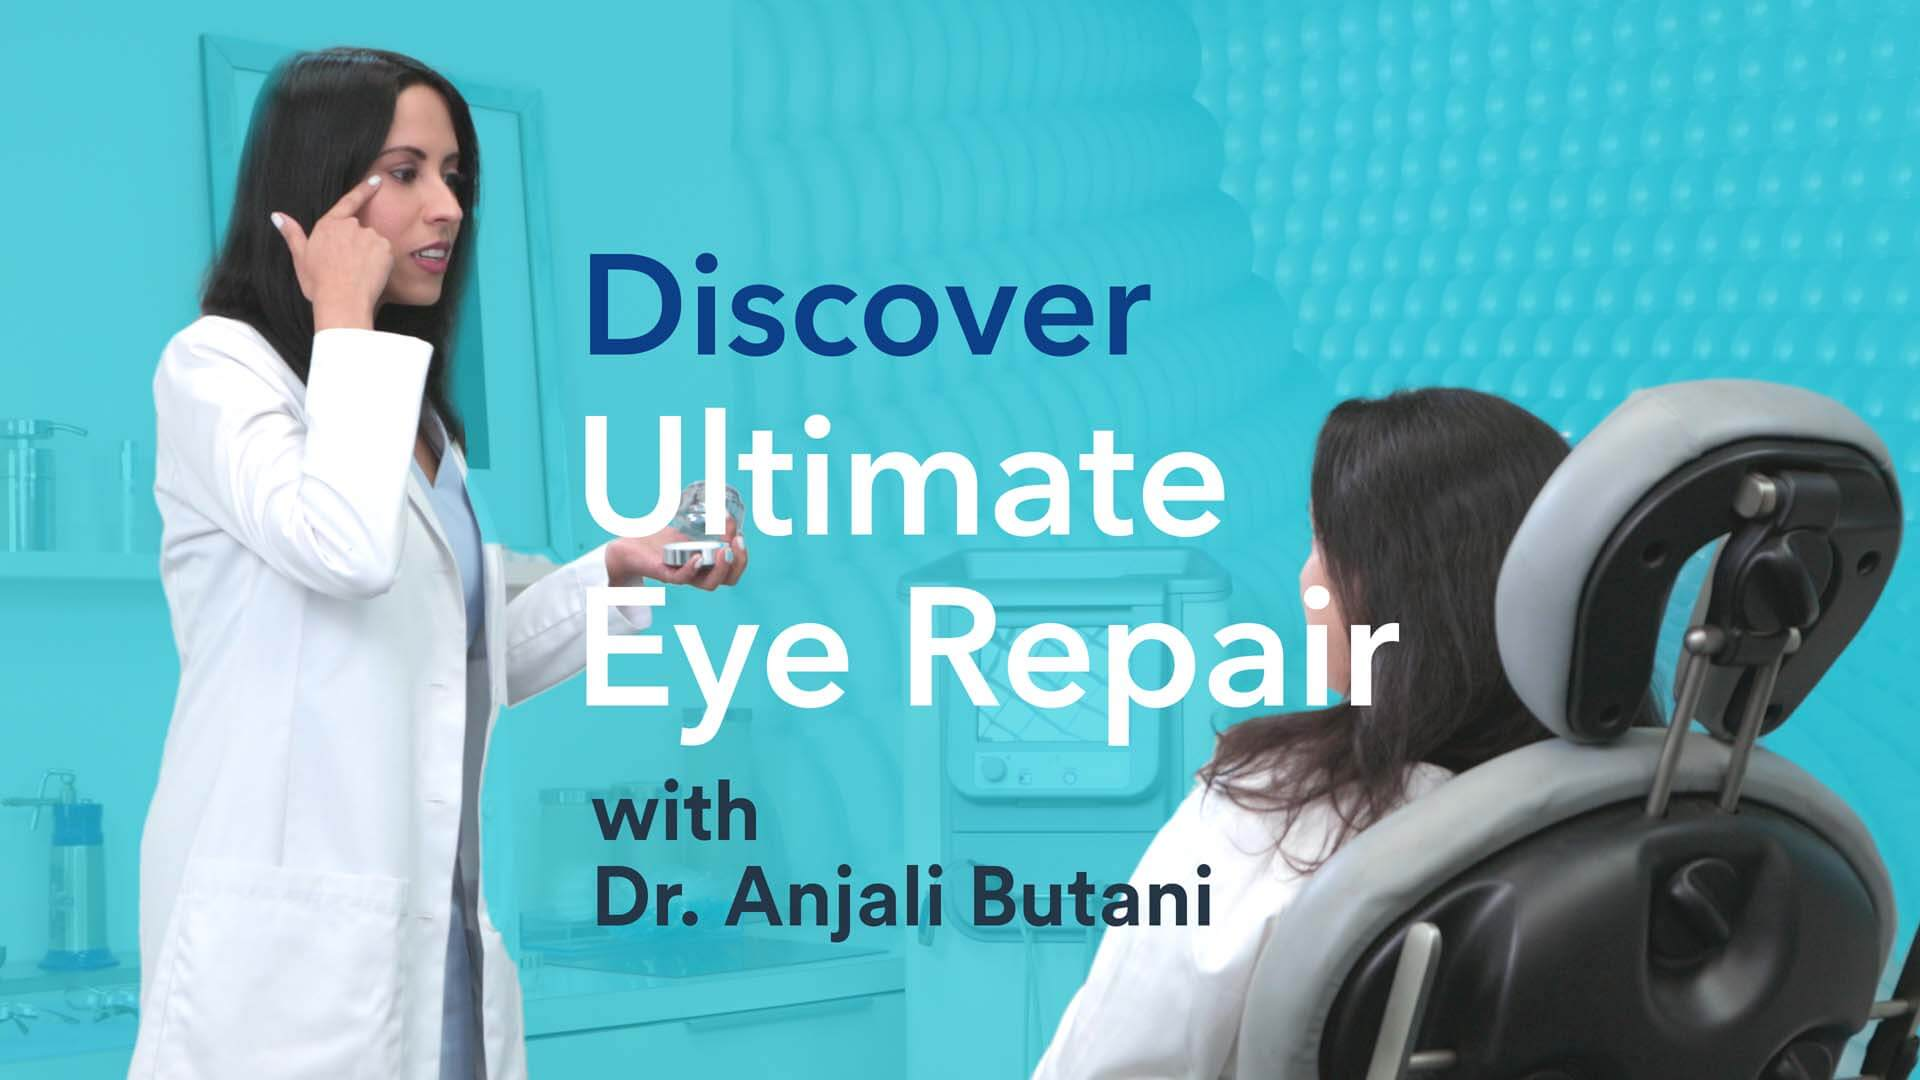 ULTIMATE EYE REPAIR Discover Video